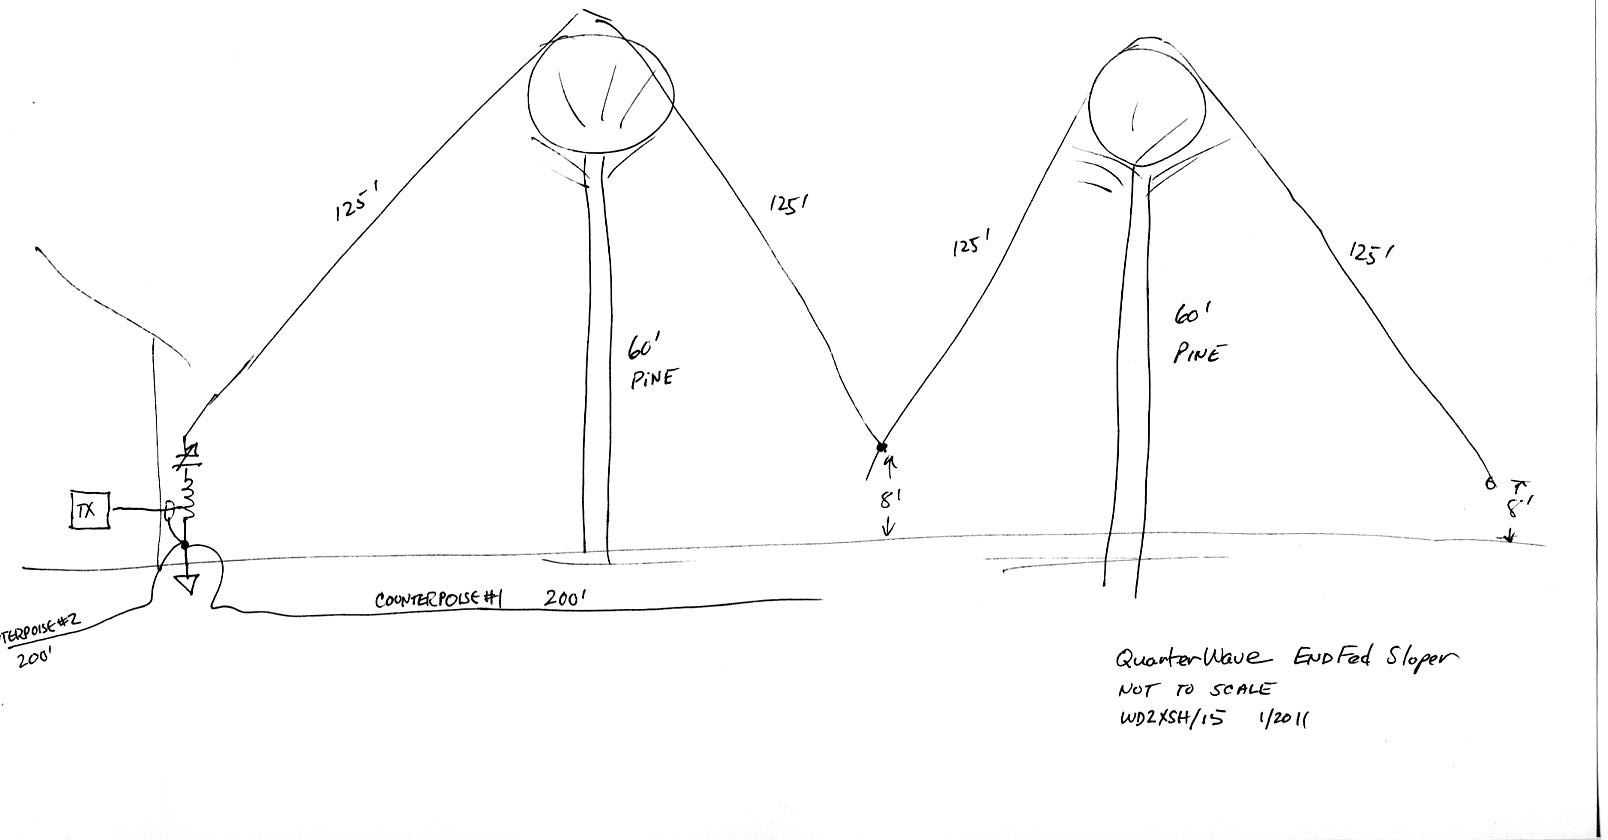 Here's a crude diagram indicating relative height and orientation. My  wooden towers determine where I can play out 500 feet of copper wire.